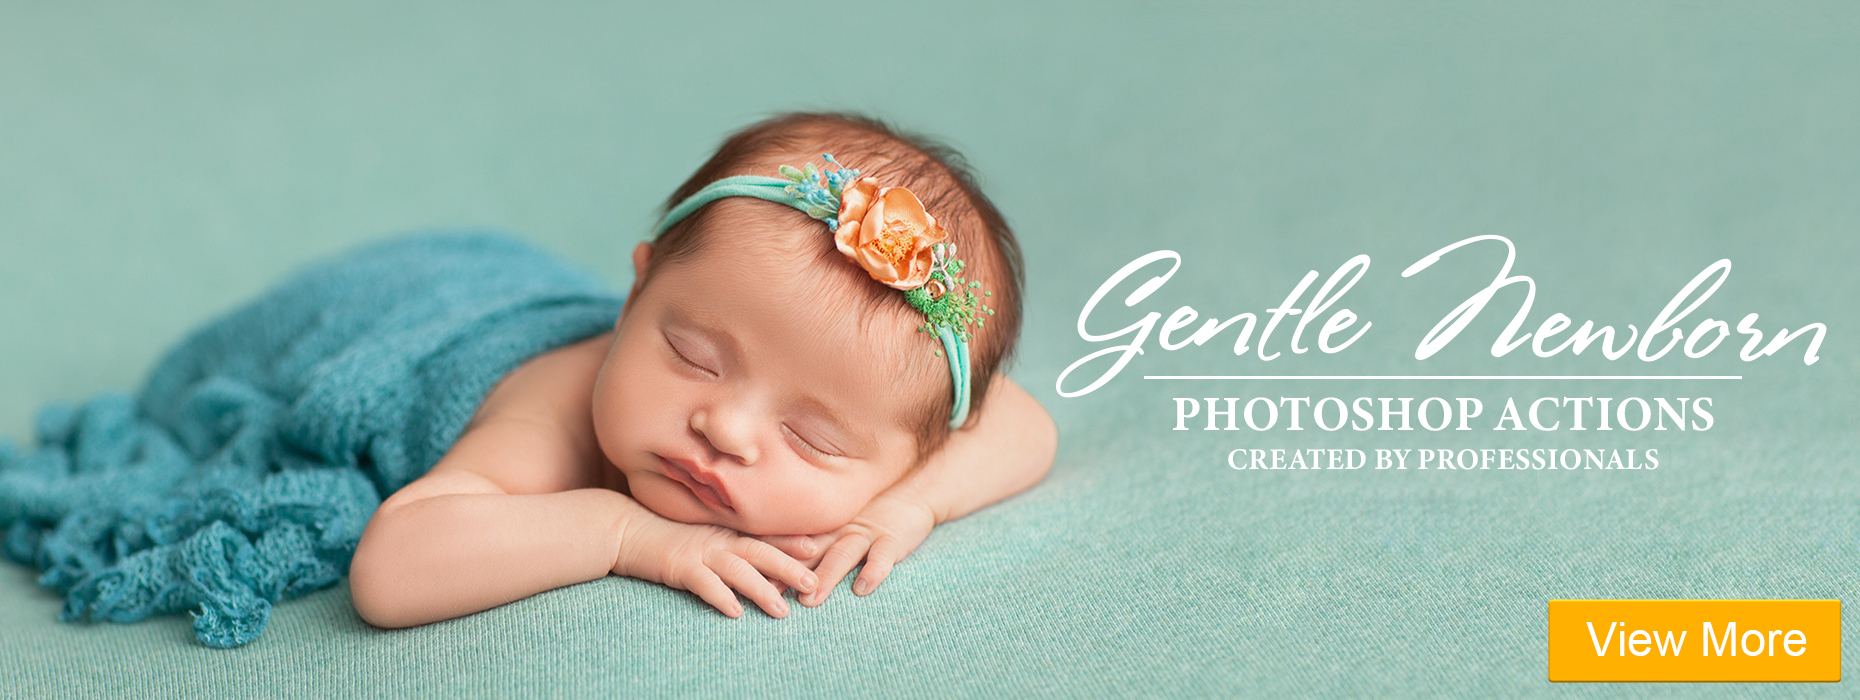 free photoshop actions download for eyes gentle newborn actions banner girl